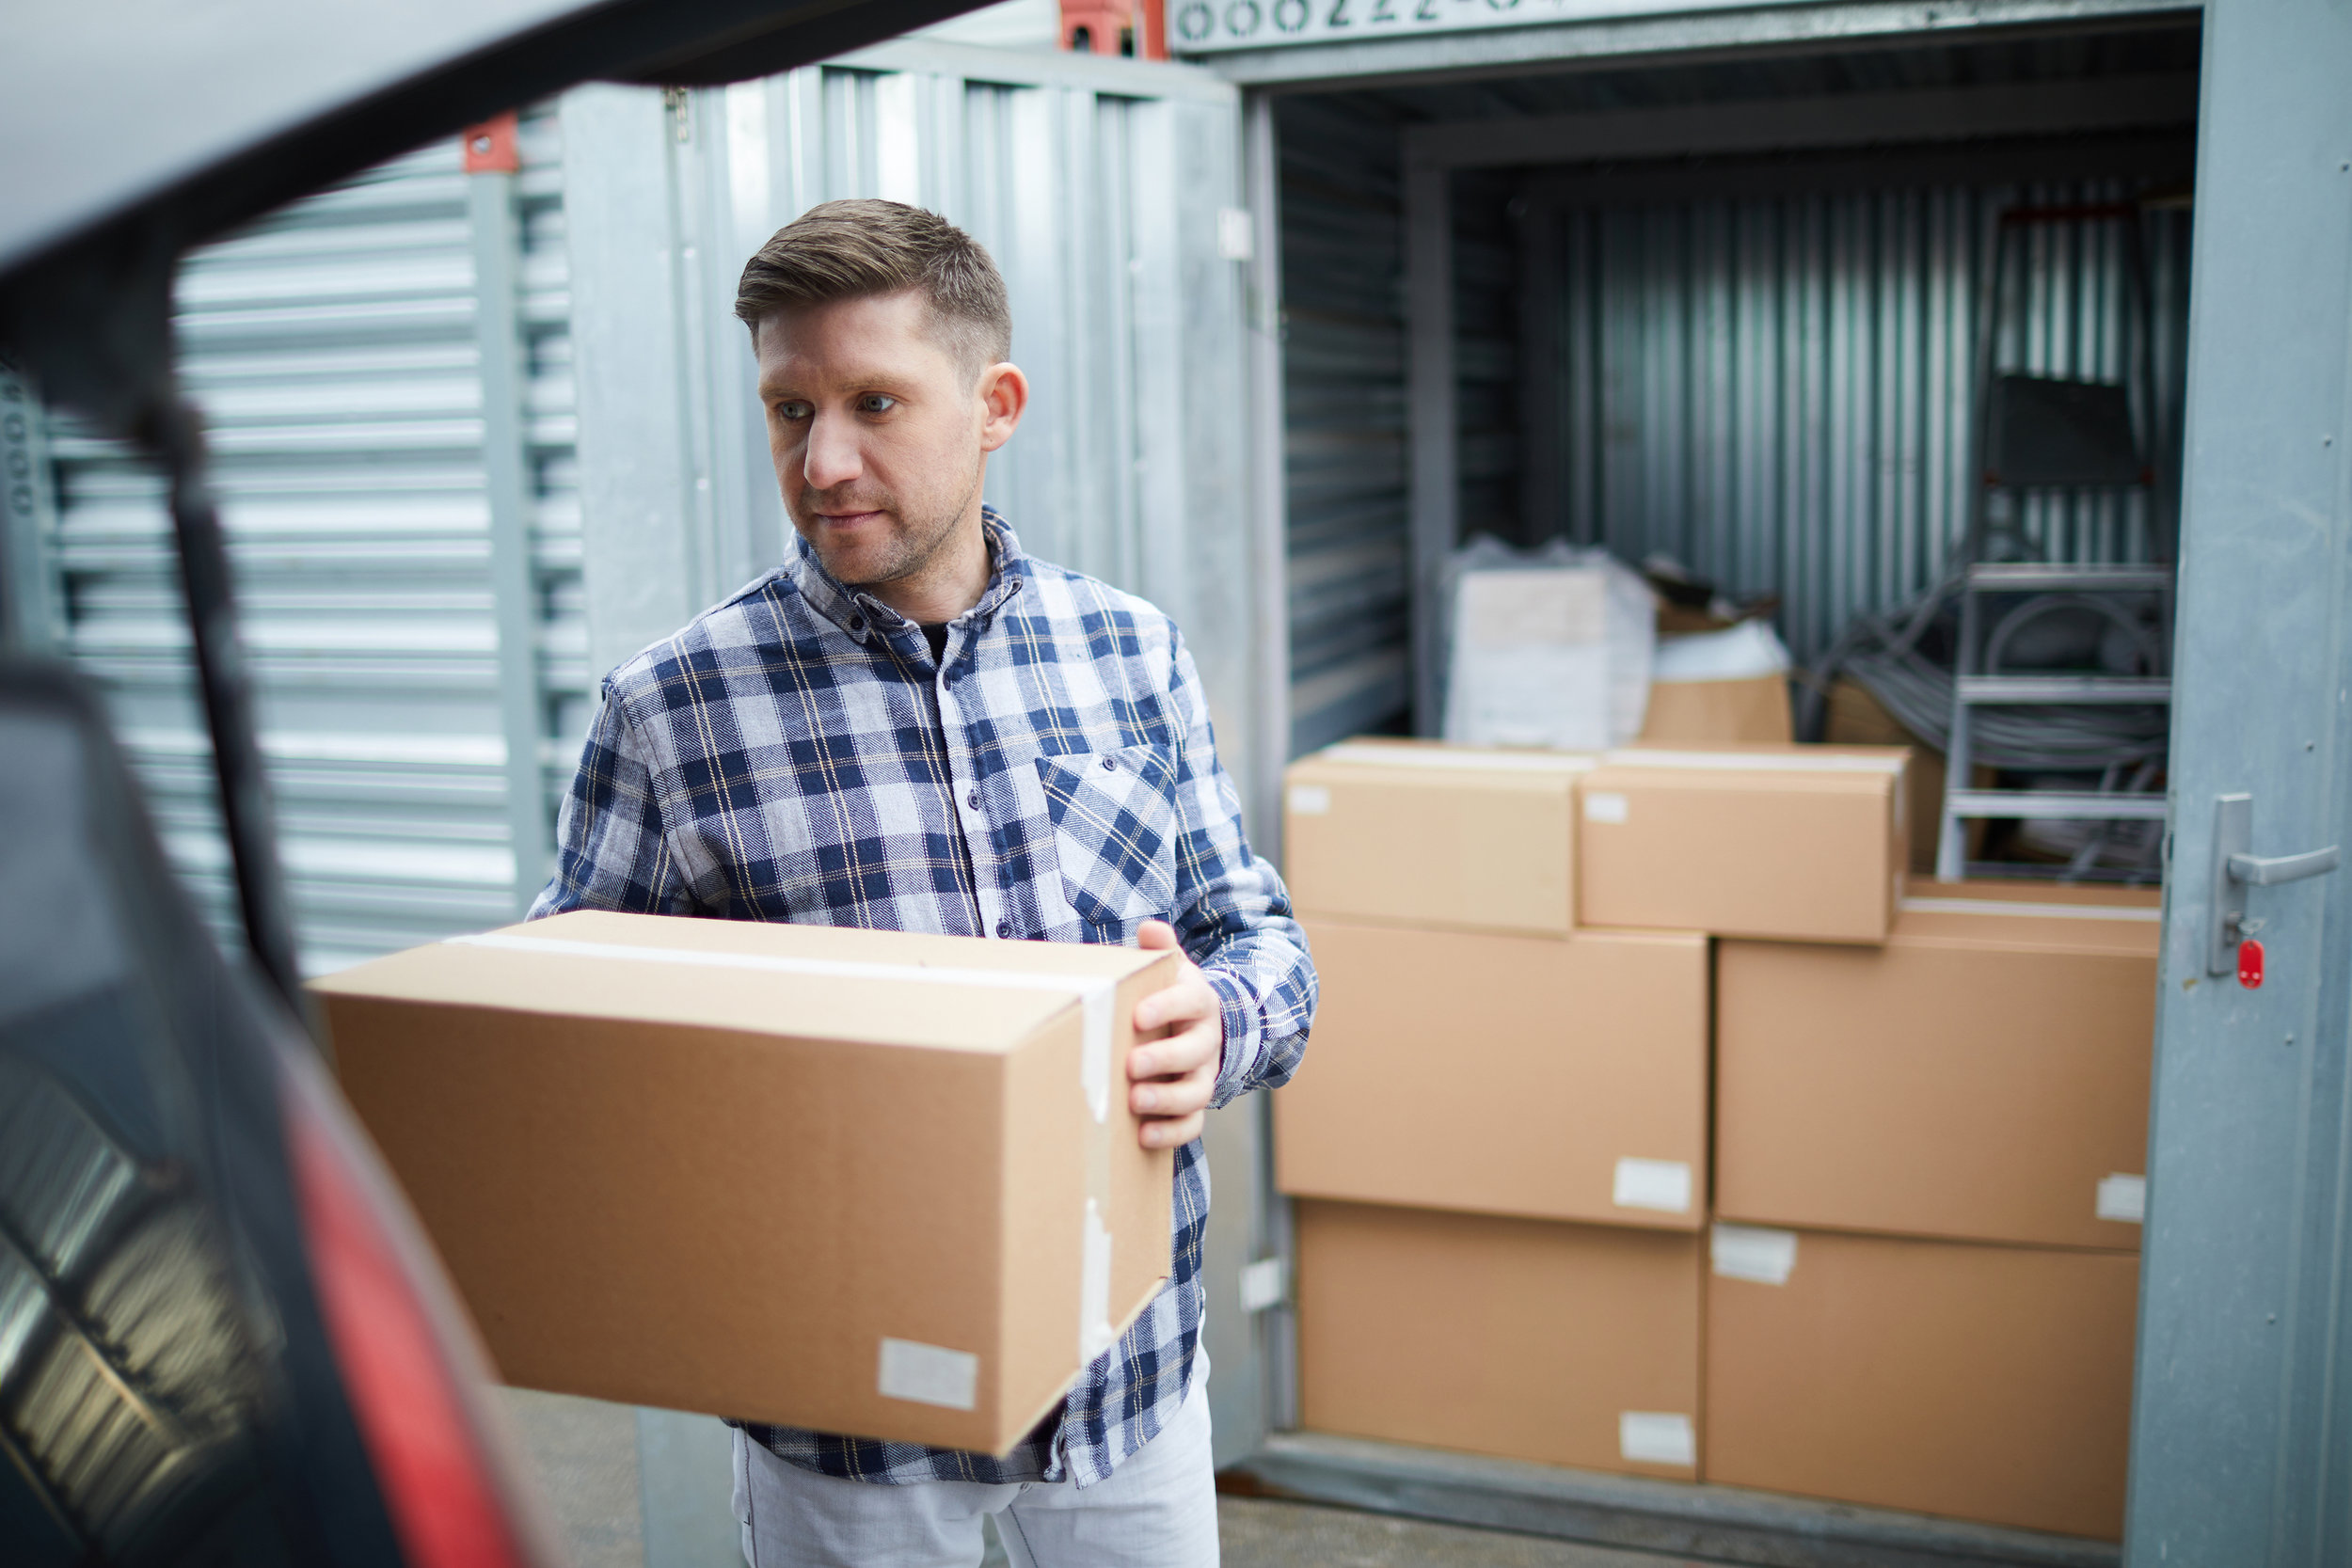 Arranging shipments and storage - We will identify the best way to ship items that are being passed on to others. If necessary, we will store items that won't fit into your new home and help you find a good place for those belongings.